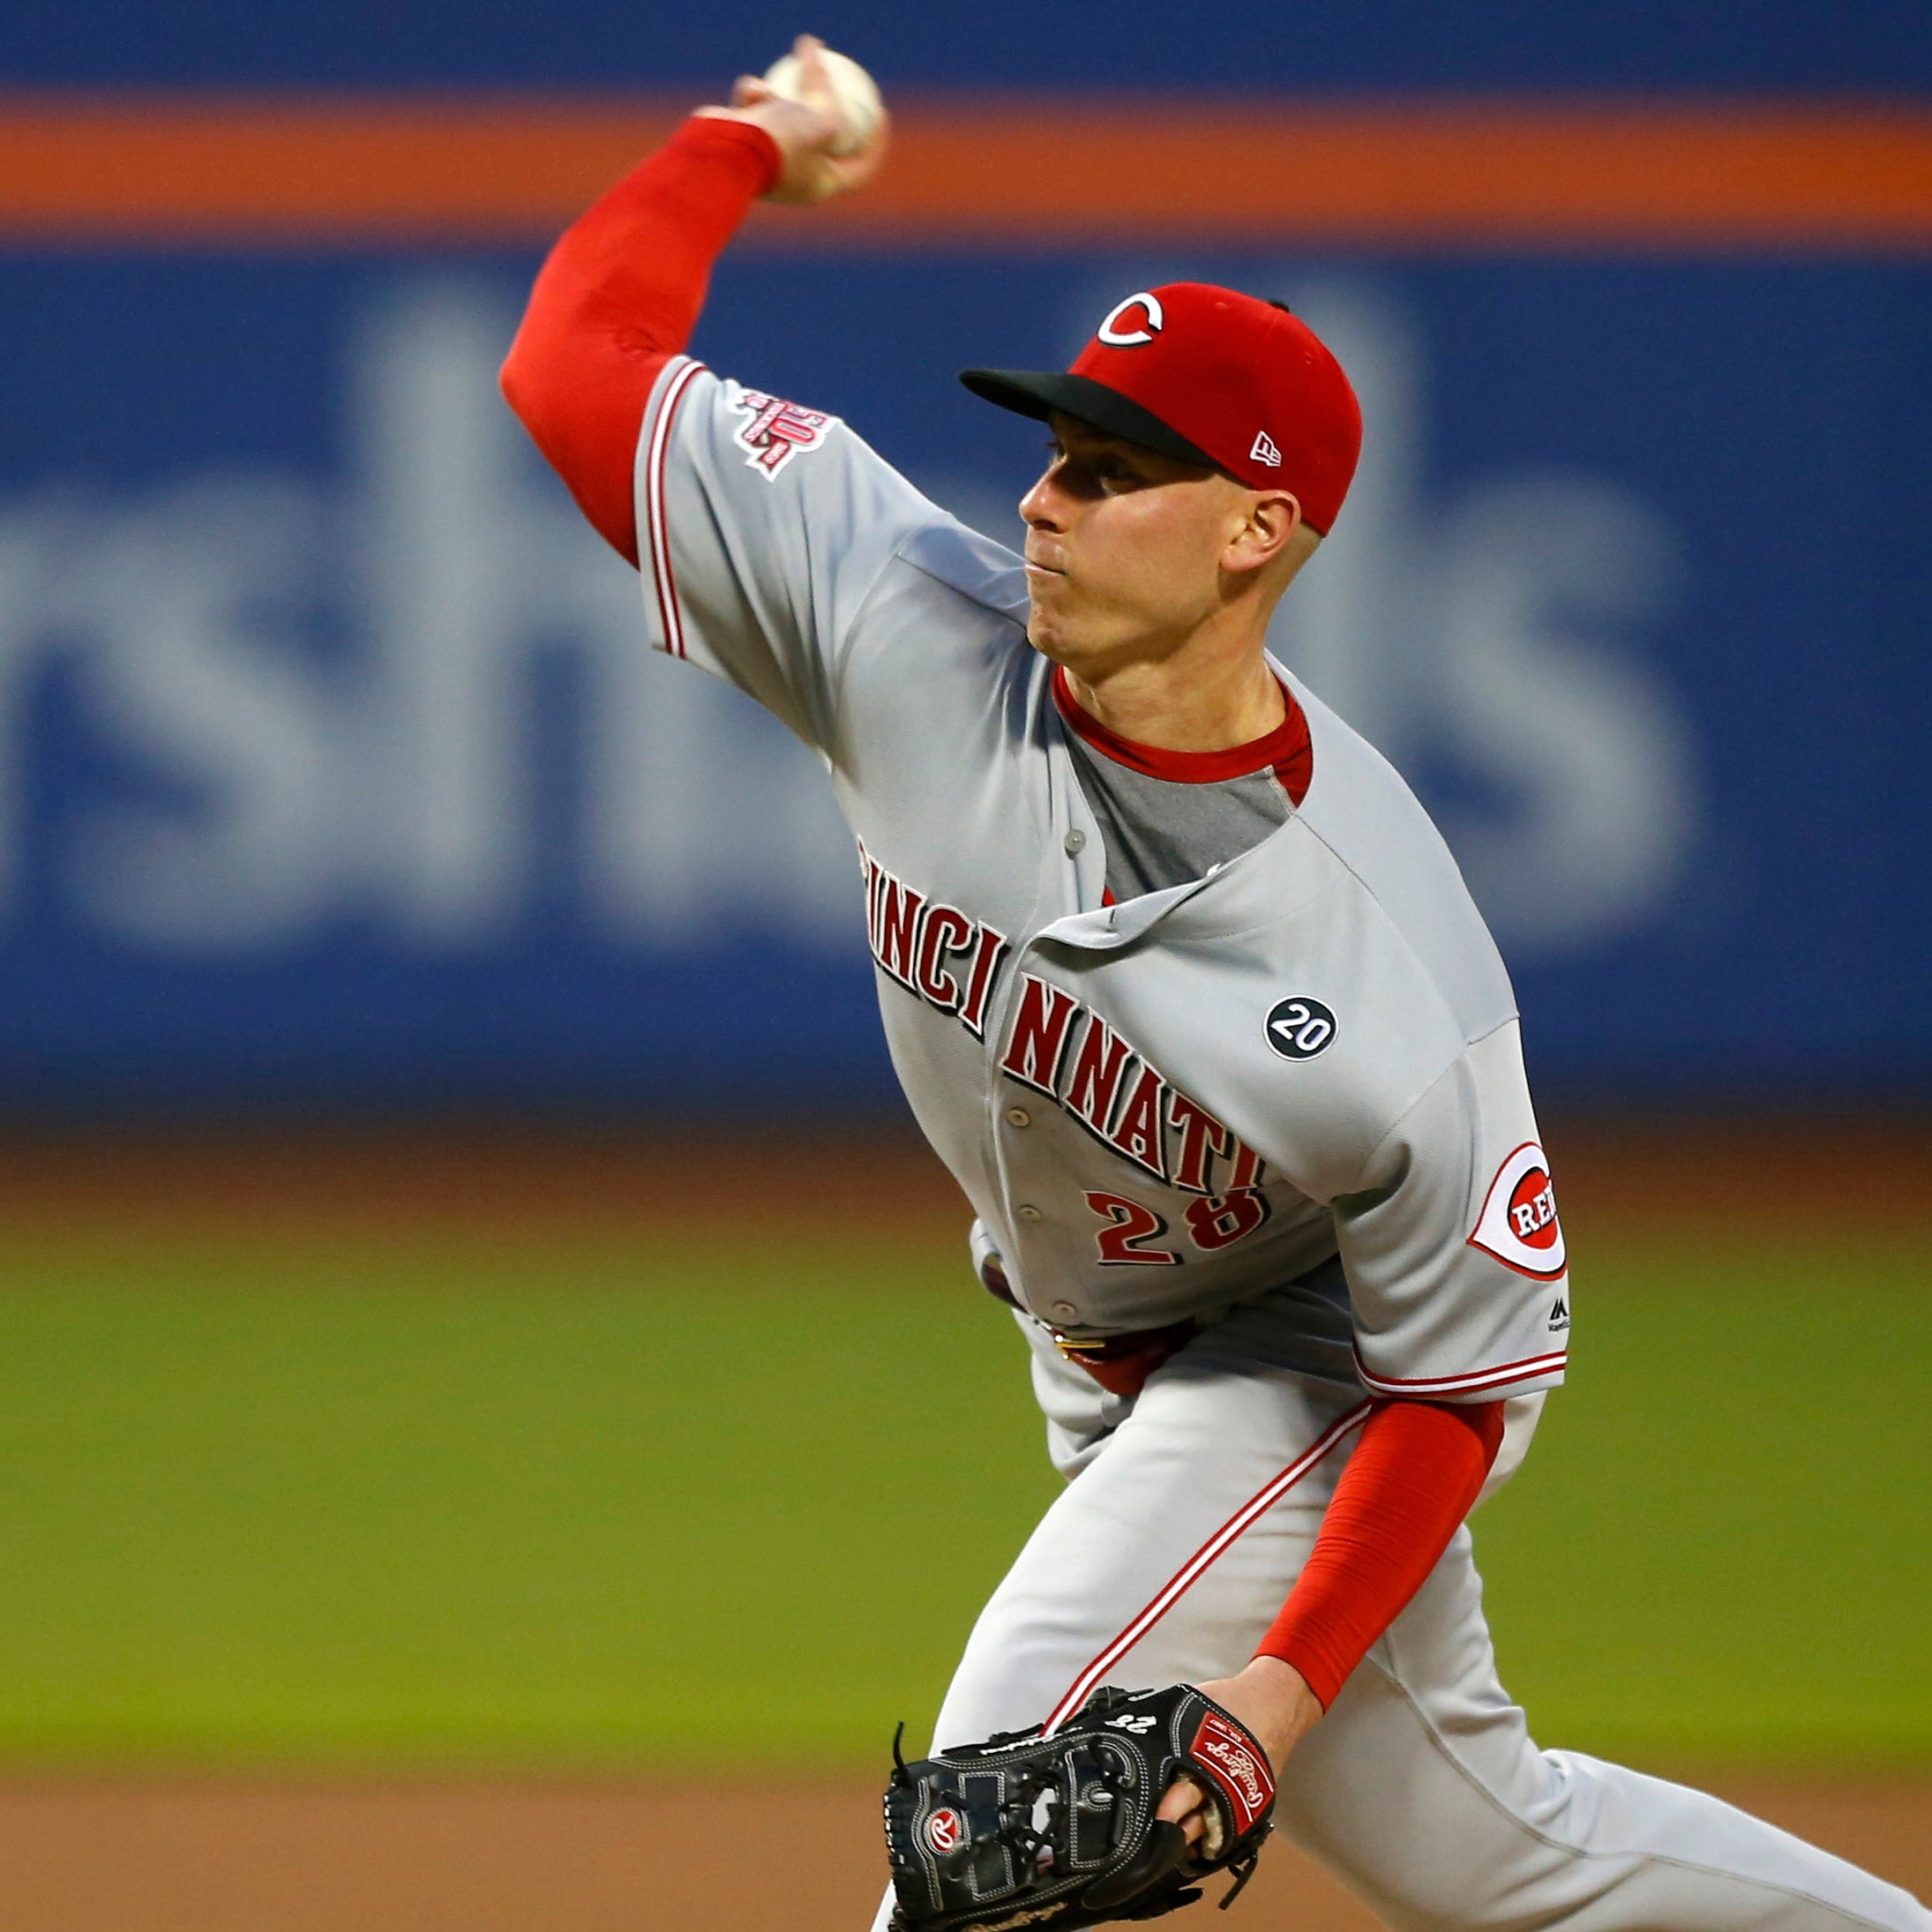 Cincinnati Reds shortstop José Iglesias stuns New York Mets with 9th-inning home run